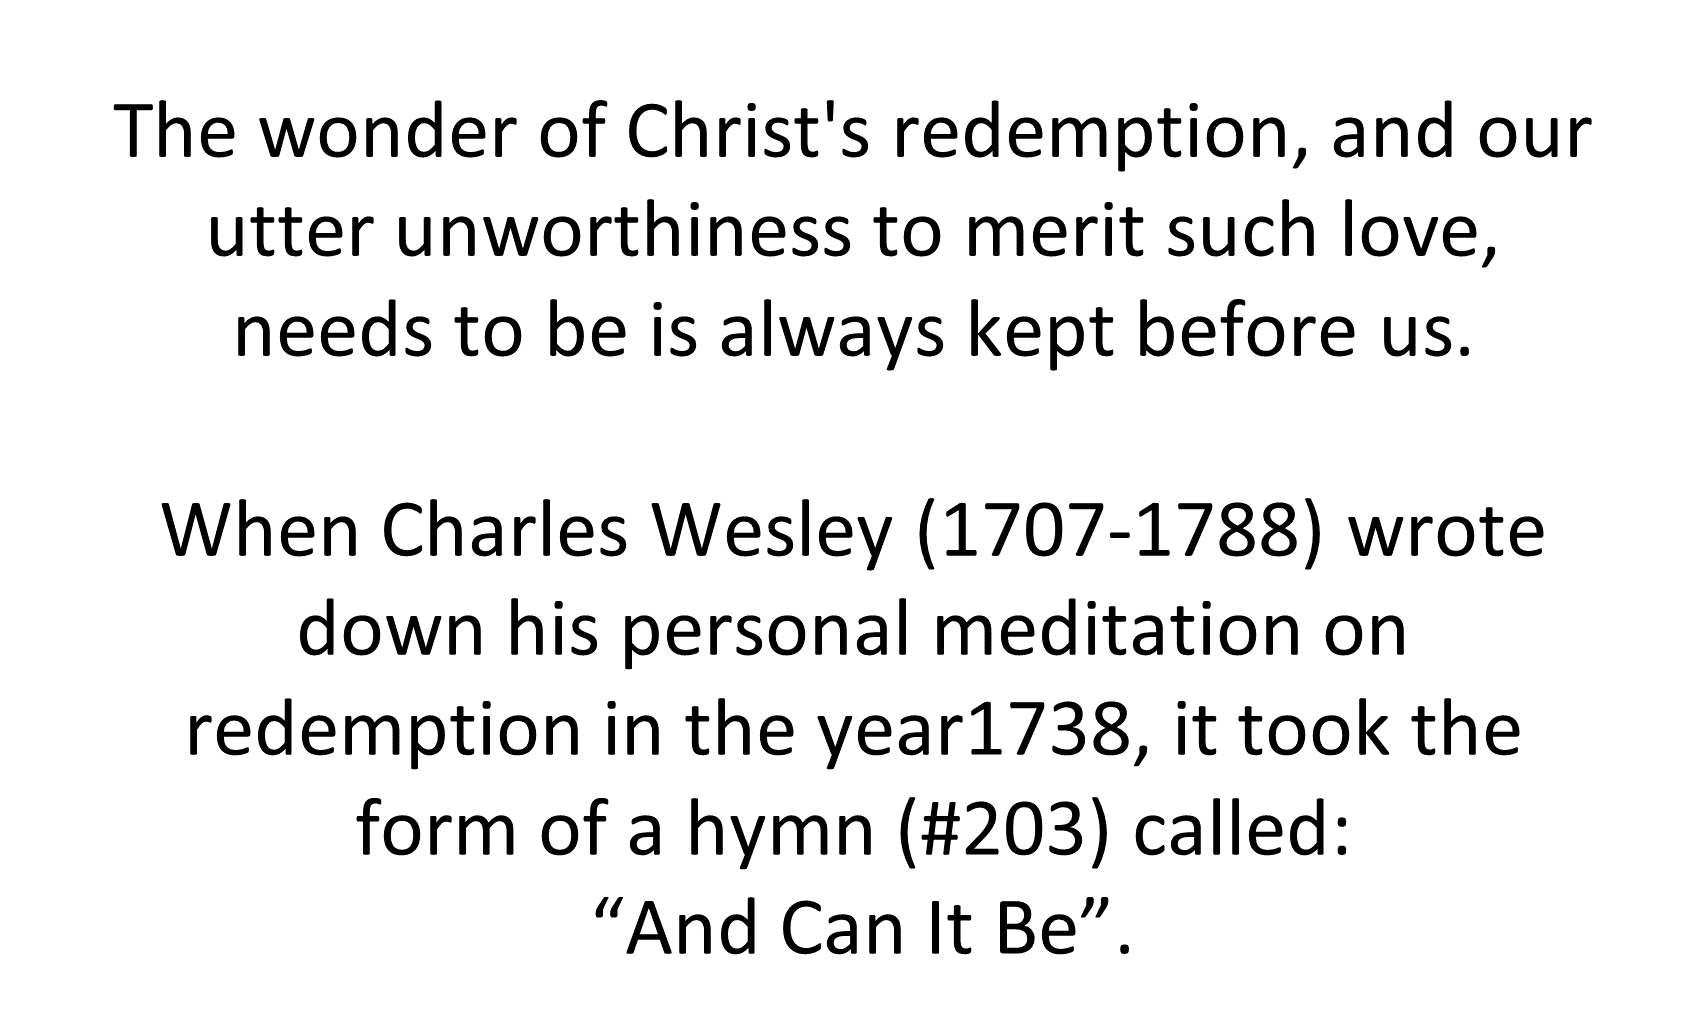 WCC-05 - Worshipping Our Savior Who Redeemed Us (9)